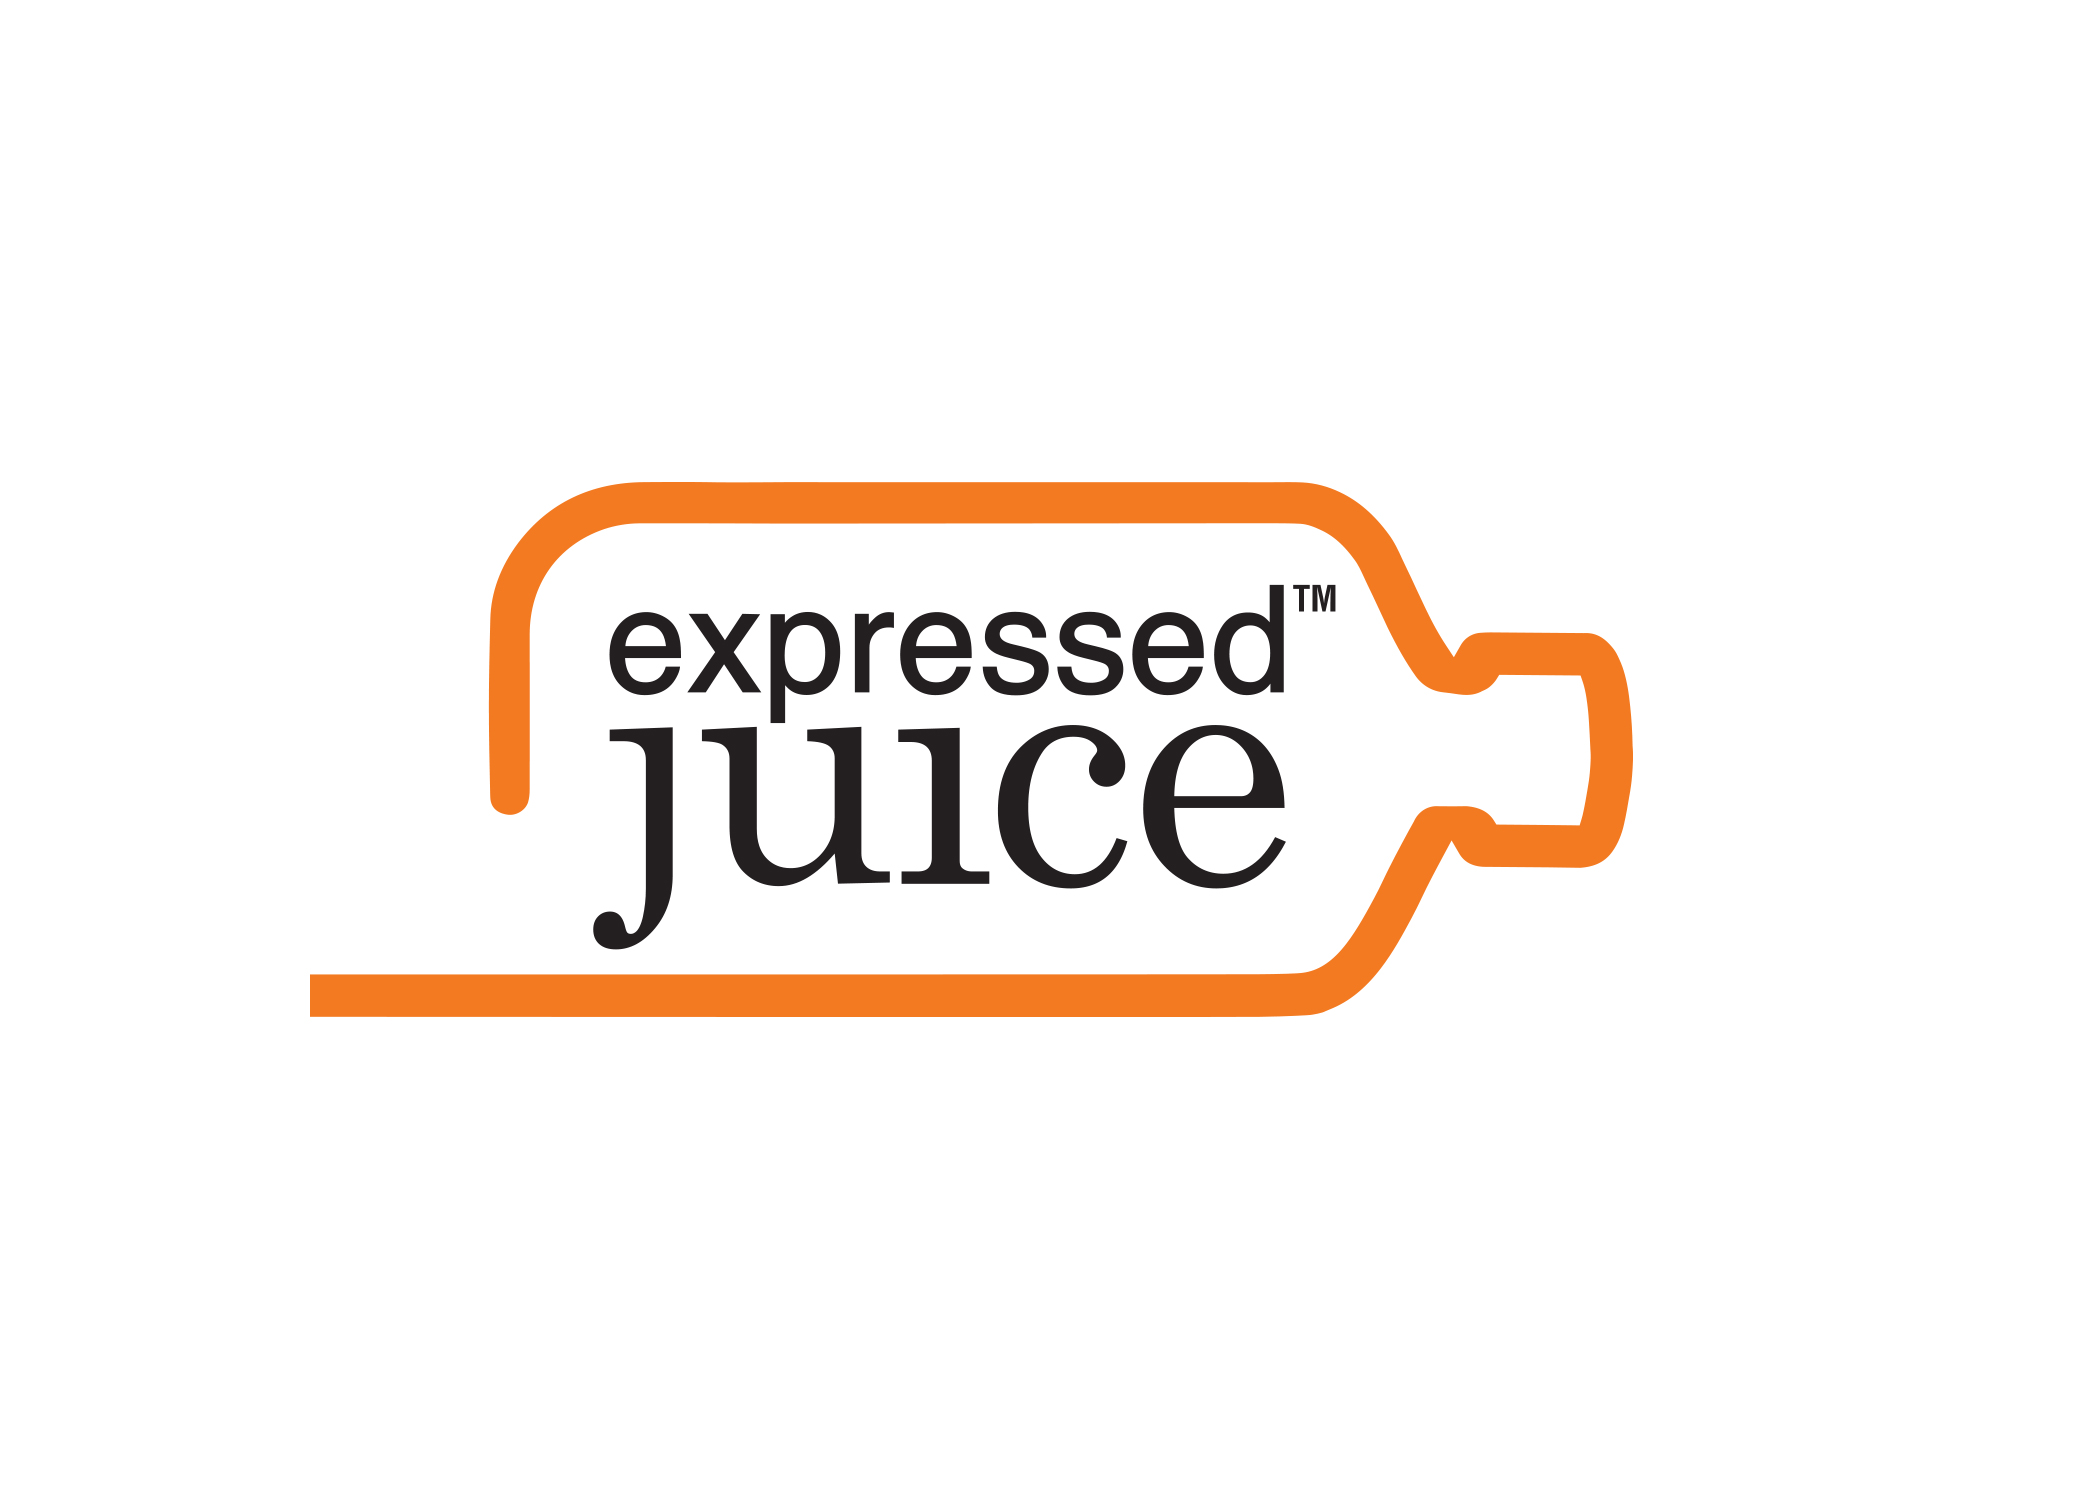 Expressed Juice brand identity design featuring sideways bottle outline in orange with black and white logo inside.